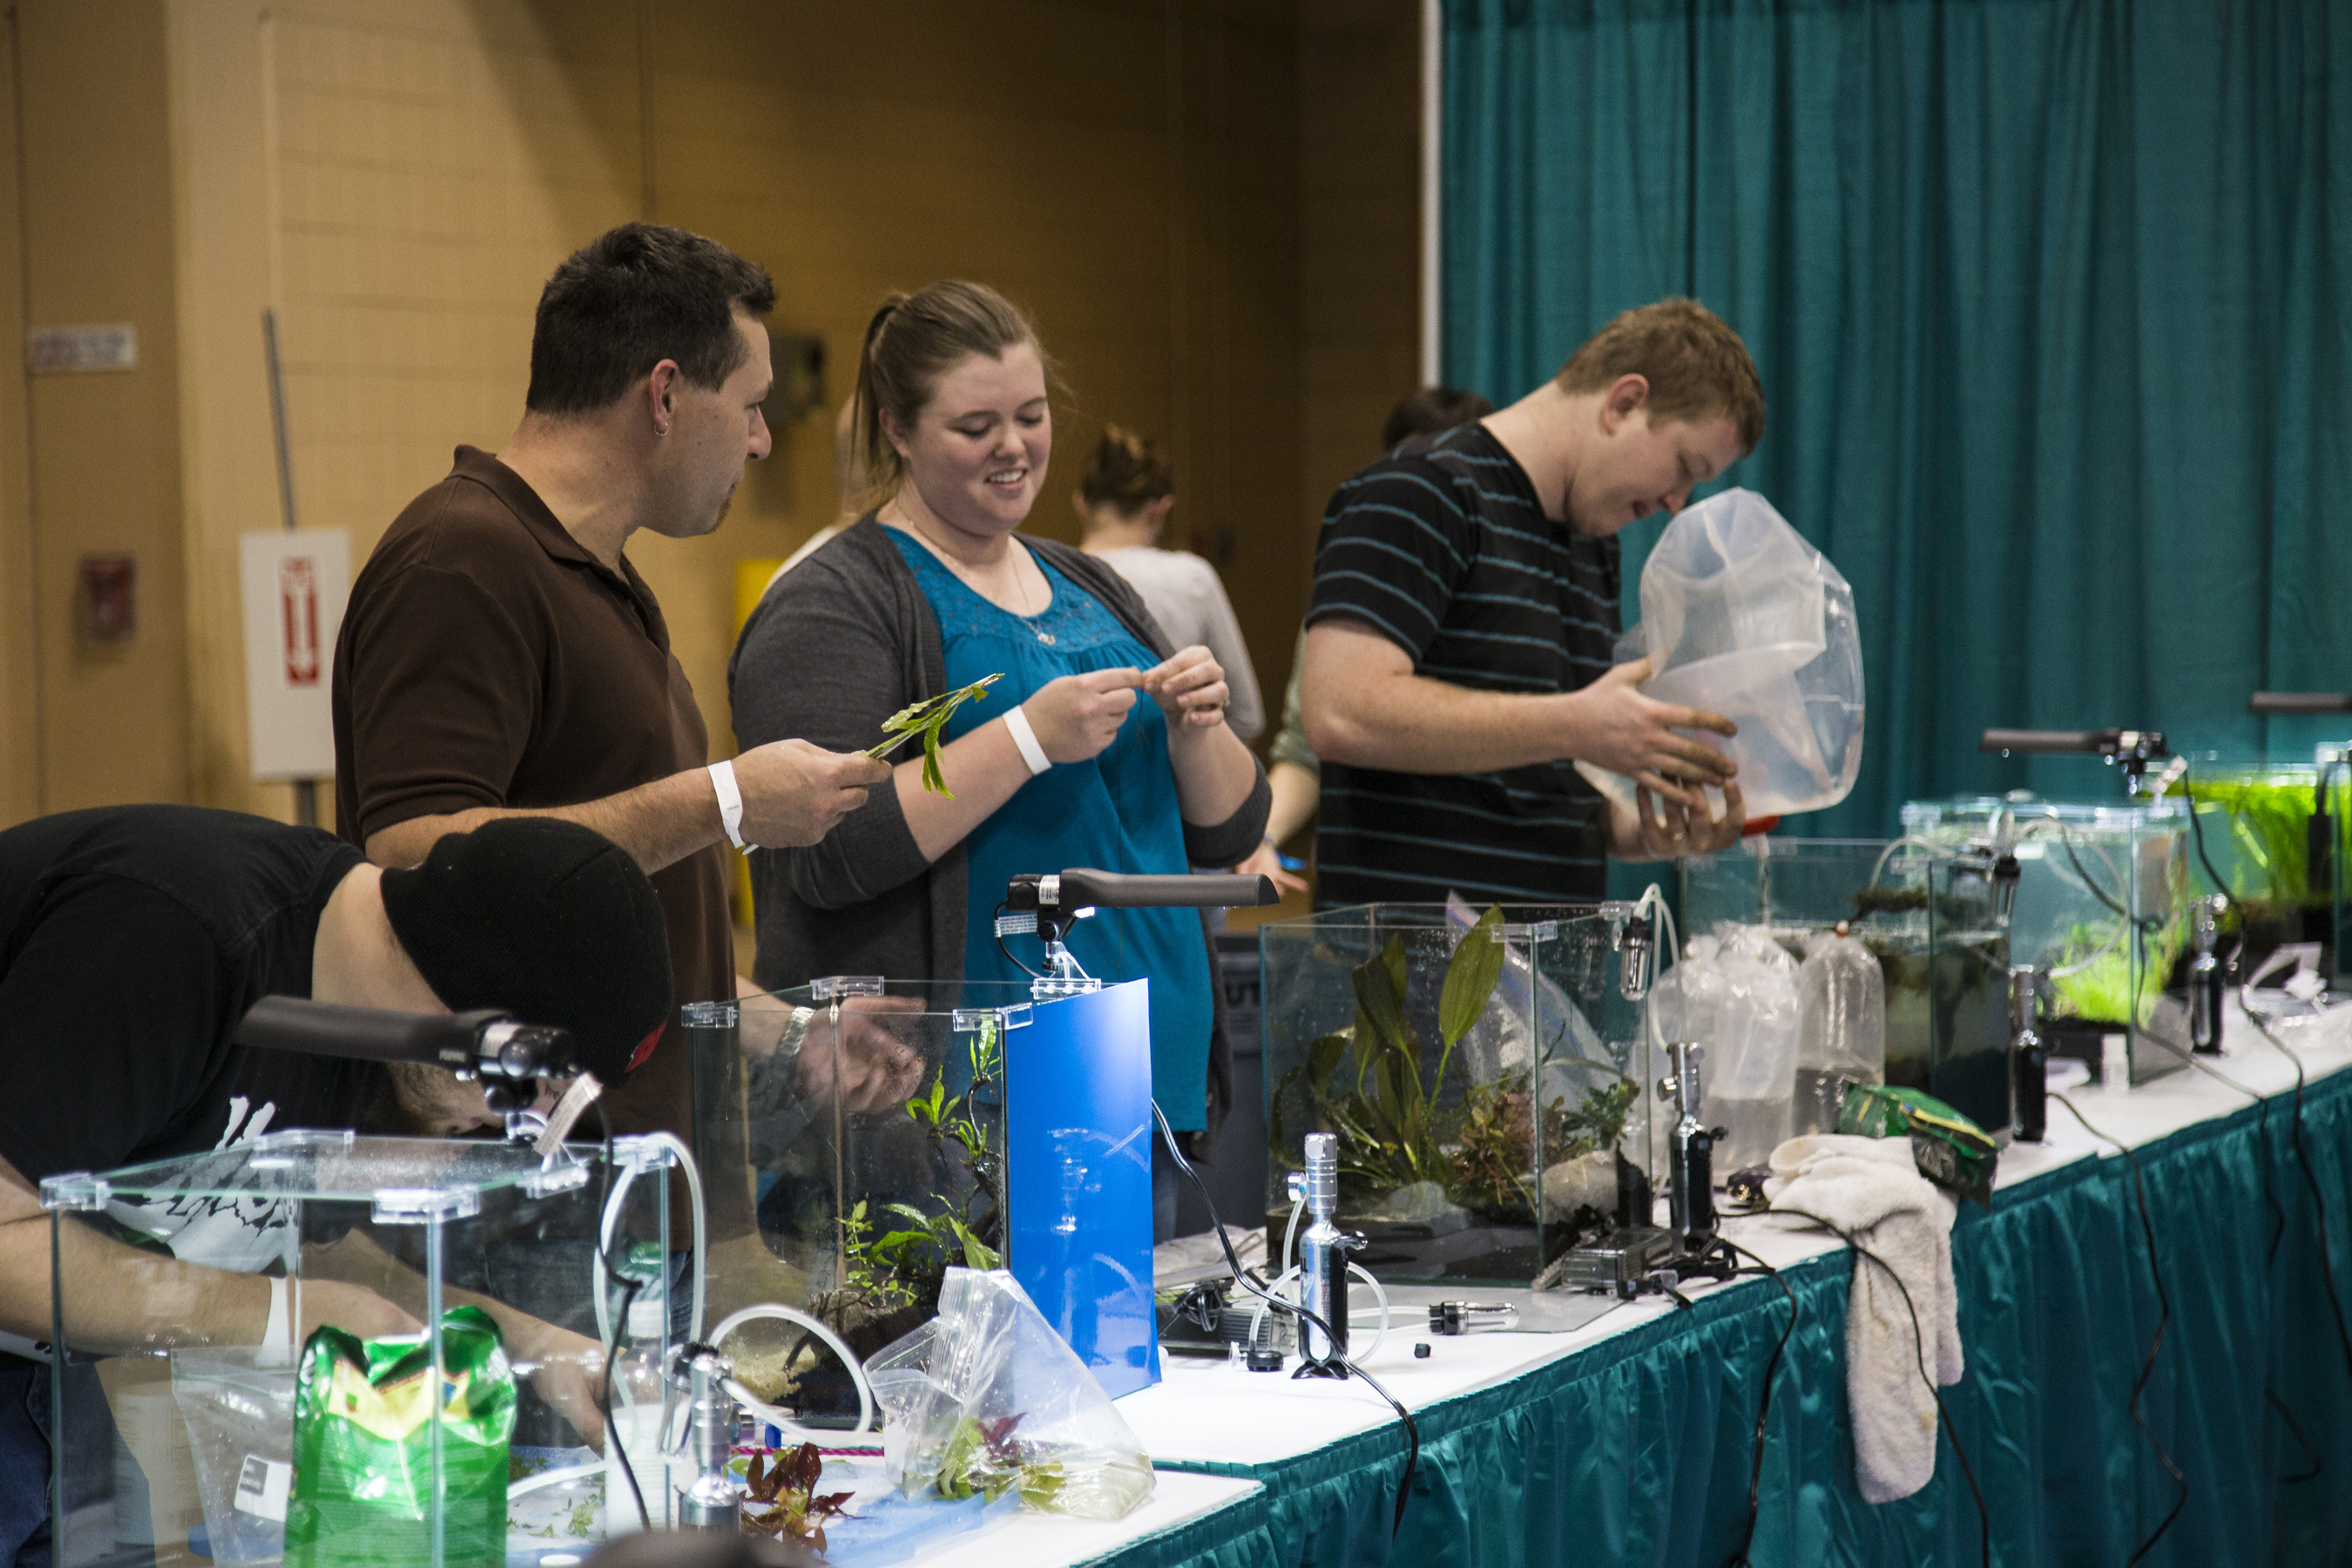 Aquascaping Live! Competitors At Work During Aquatic Experience   Chicago  2014. Image By Dan